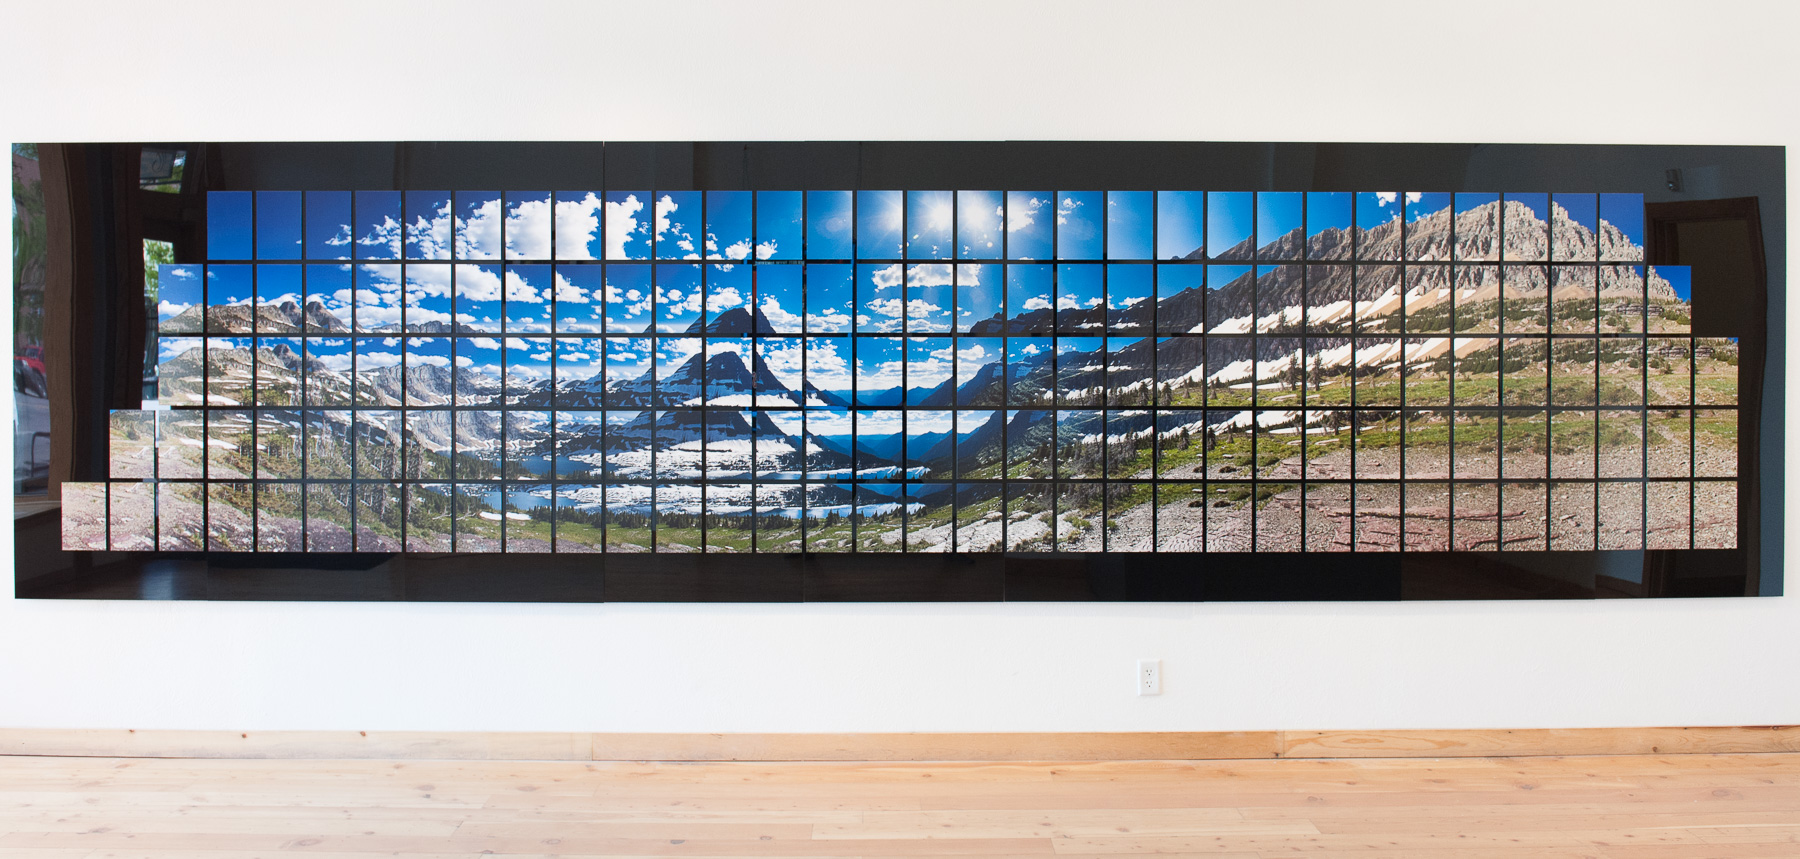 An image of Hidden Lake installed at the Rocky Mountain School of Photography Gallery in Missoula, MT